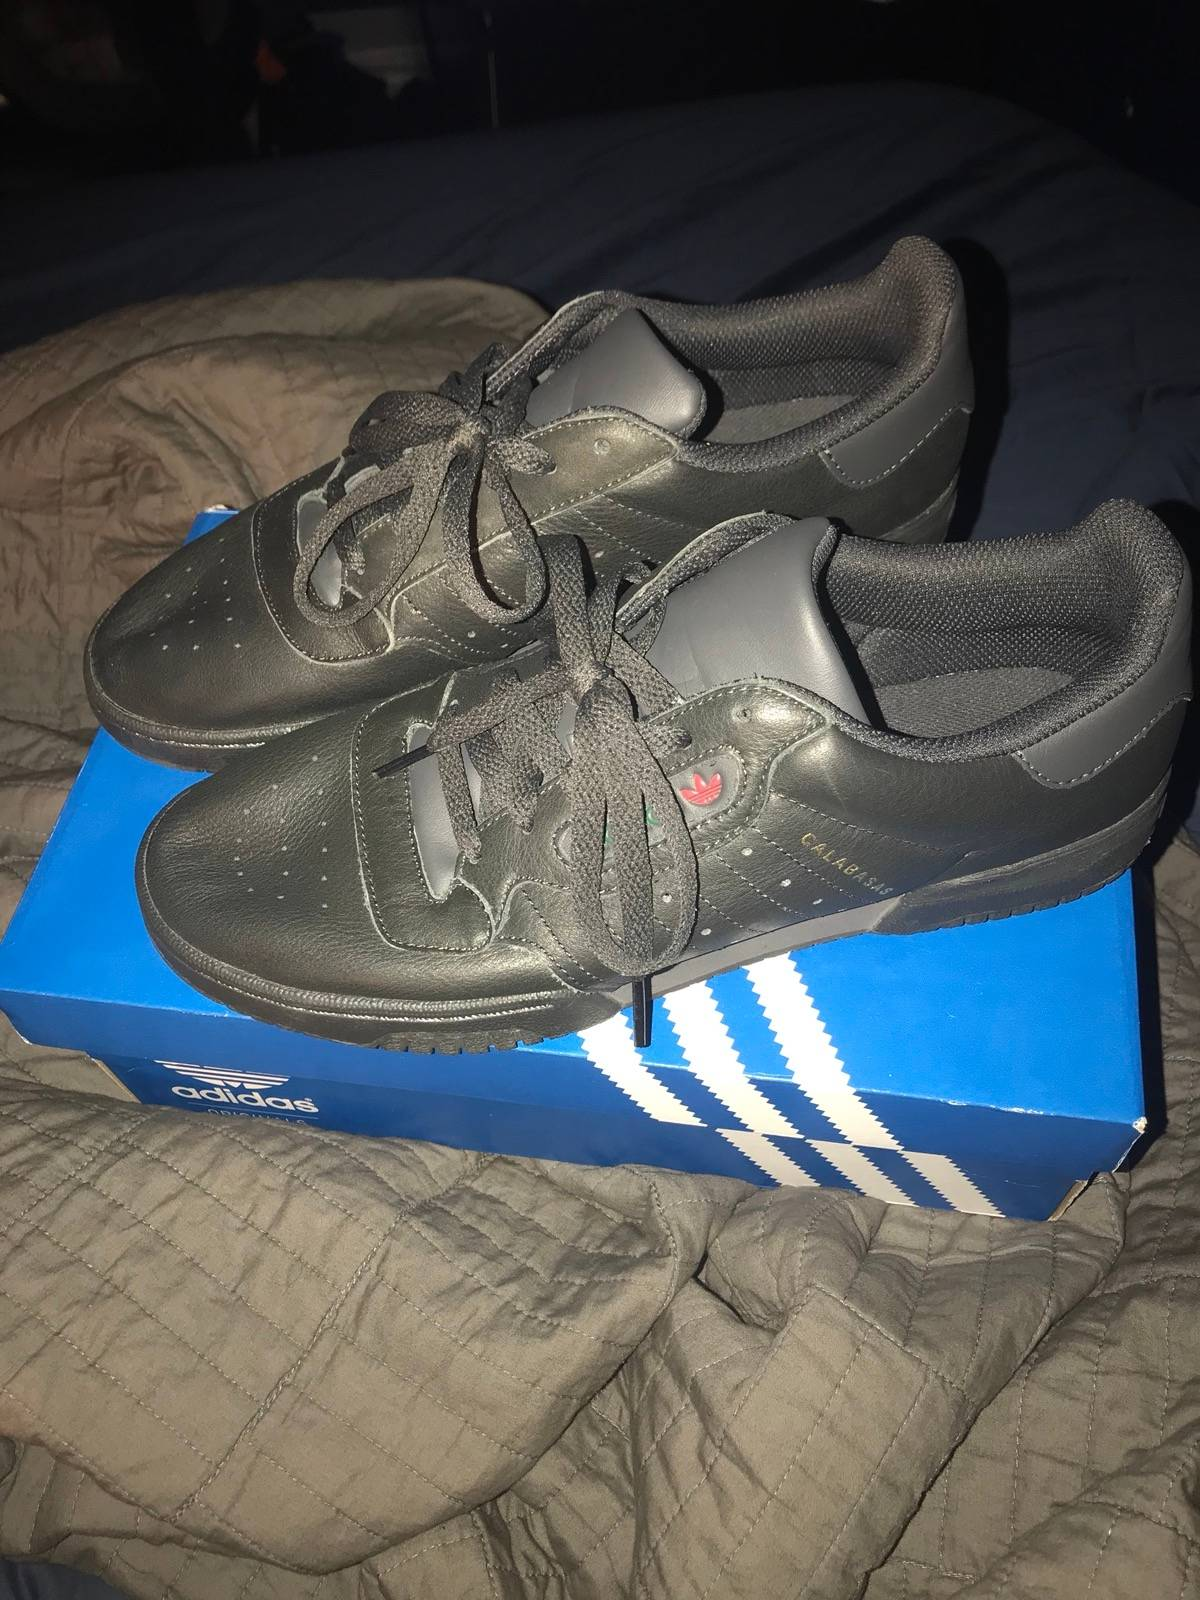 Adidas Yeezy Powerphase Calabasas Black Size 9 Og All Vnds Size 9 $76